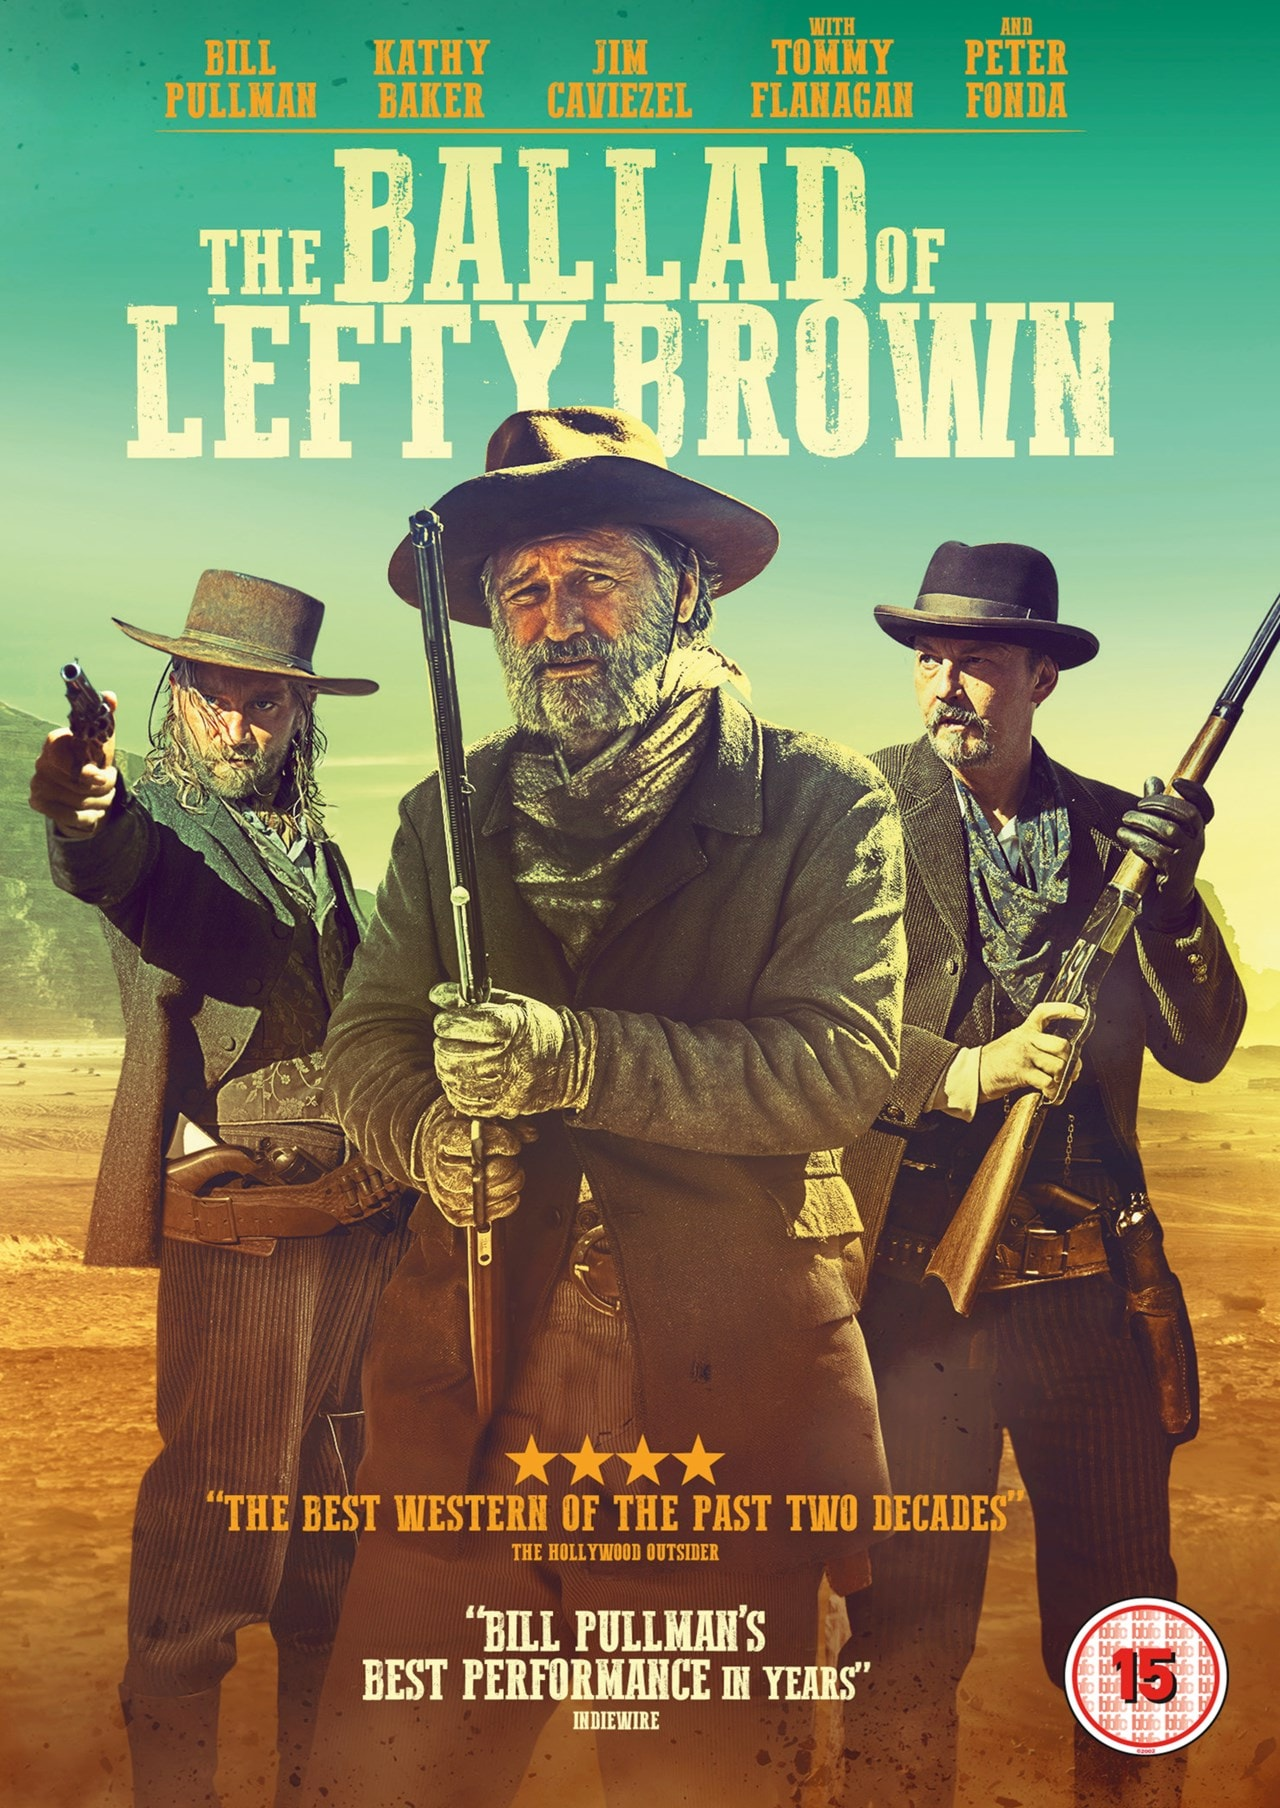 The Ballad of Lefty Brown - 1